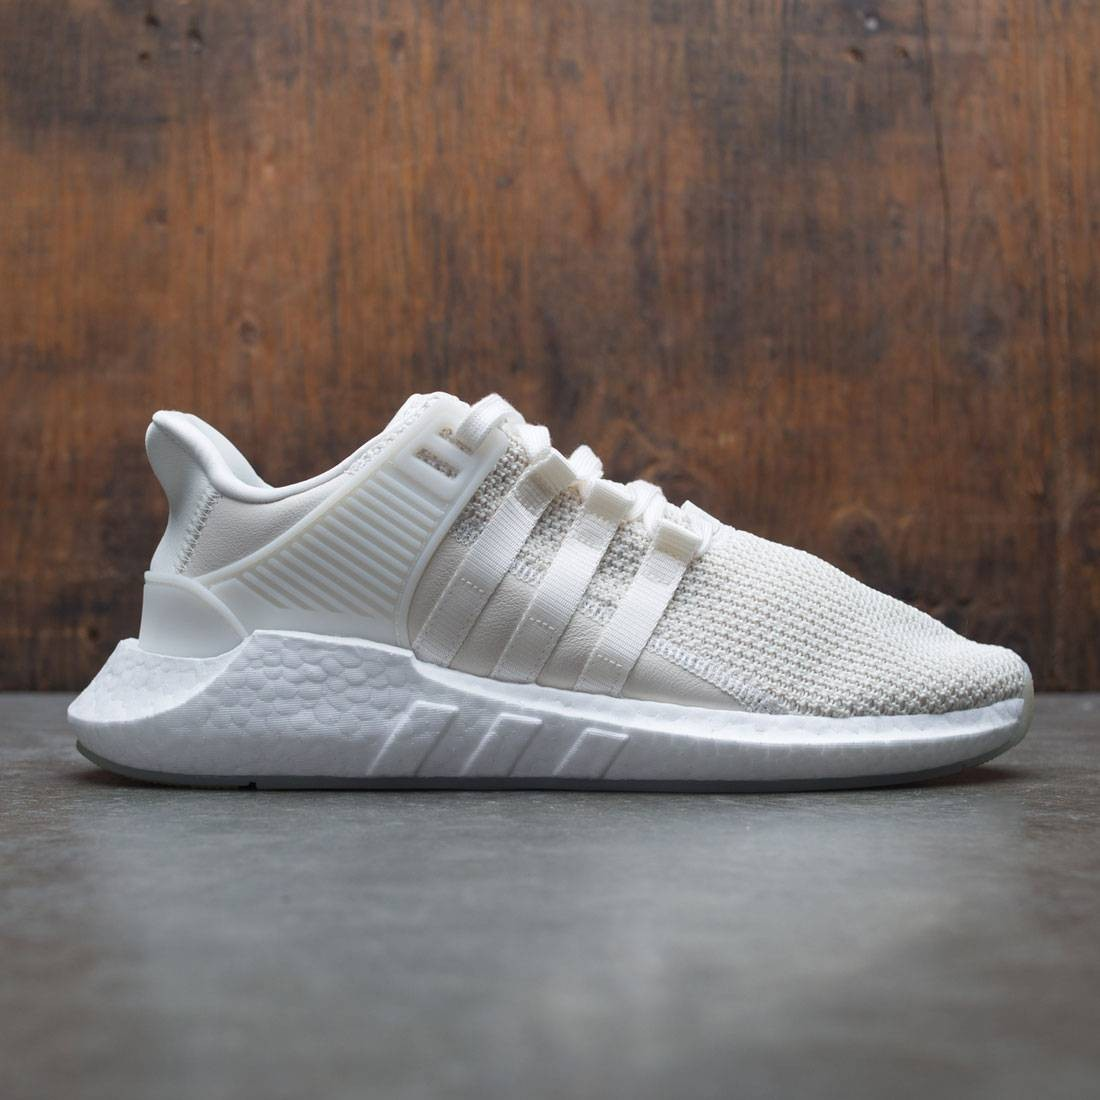 quality design ff233 ed019 Adidas Men EQT Support 93/17 (white / off white / footwear white)